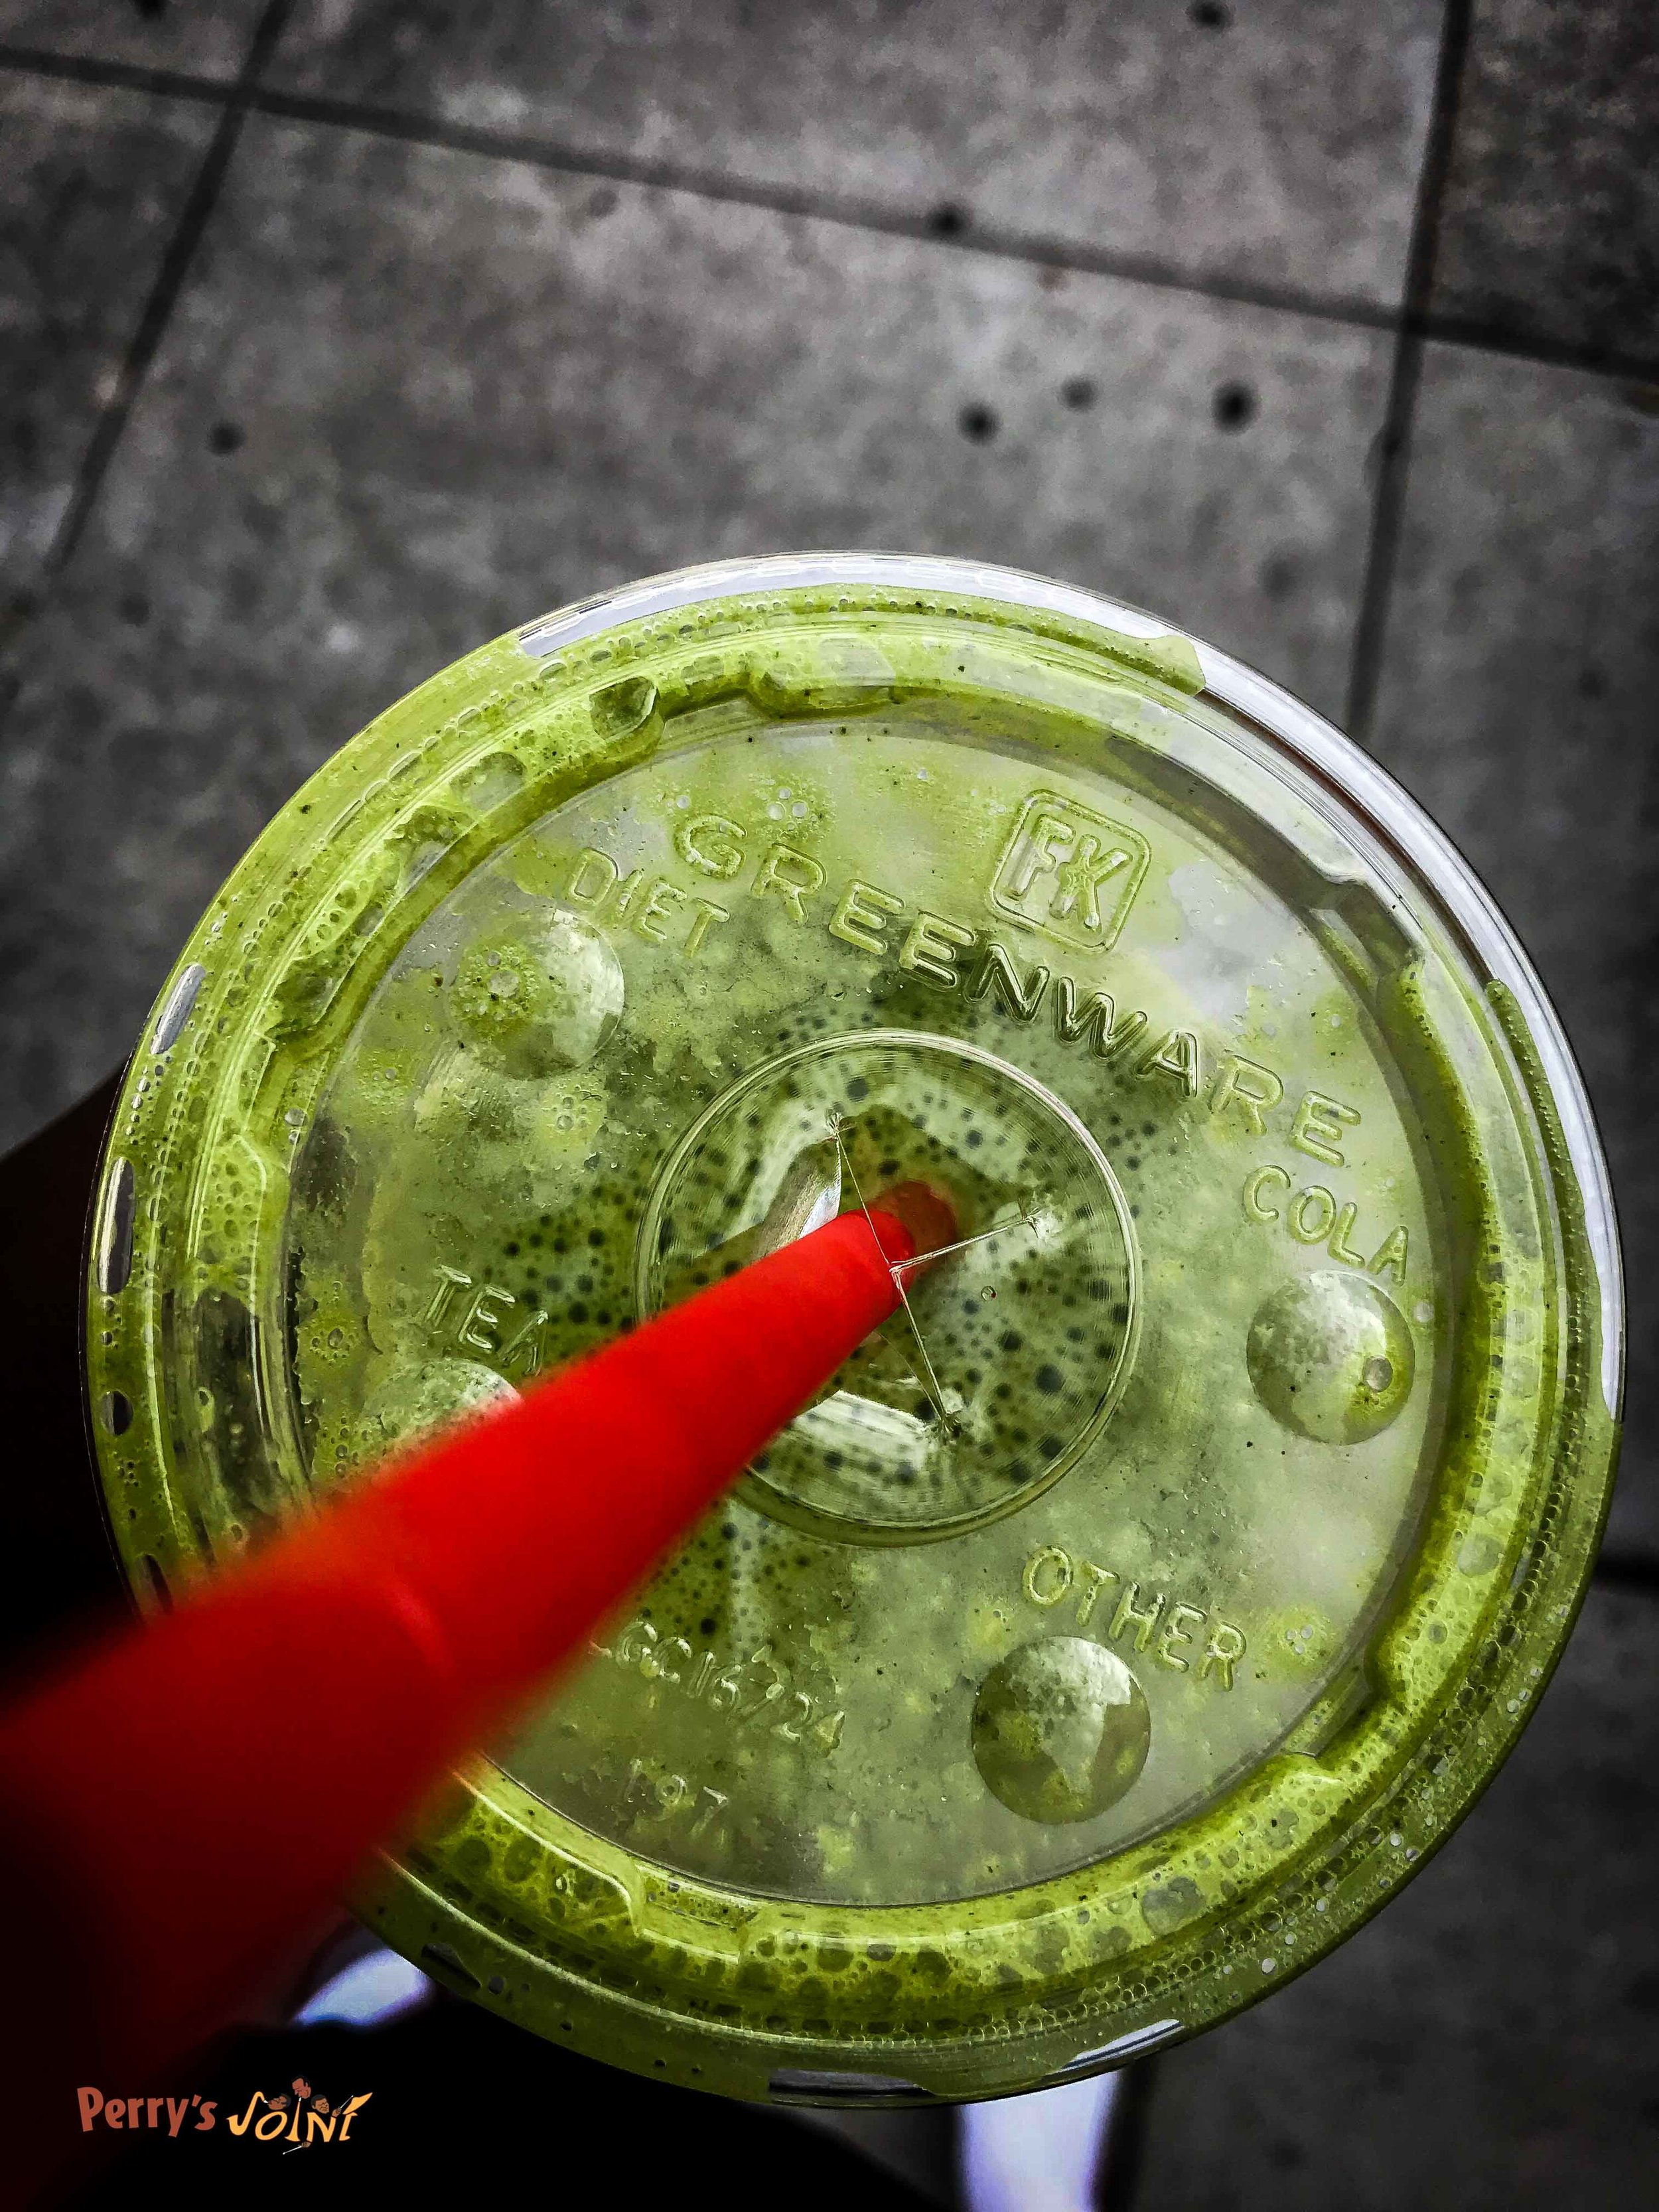 Perry's Joint   The Green Drink